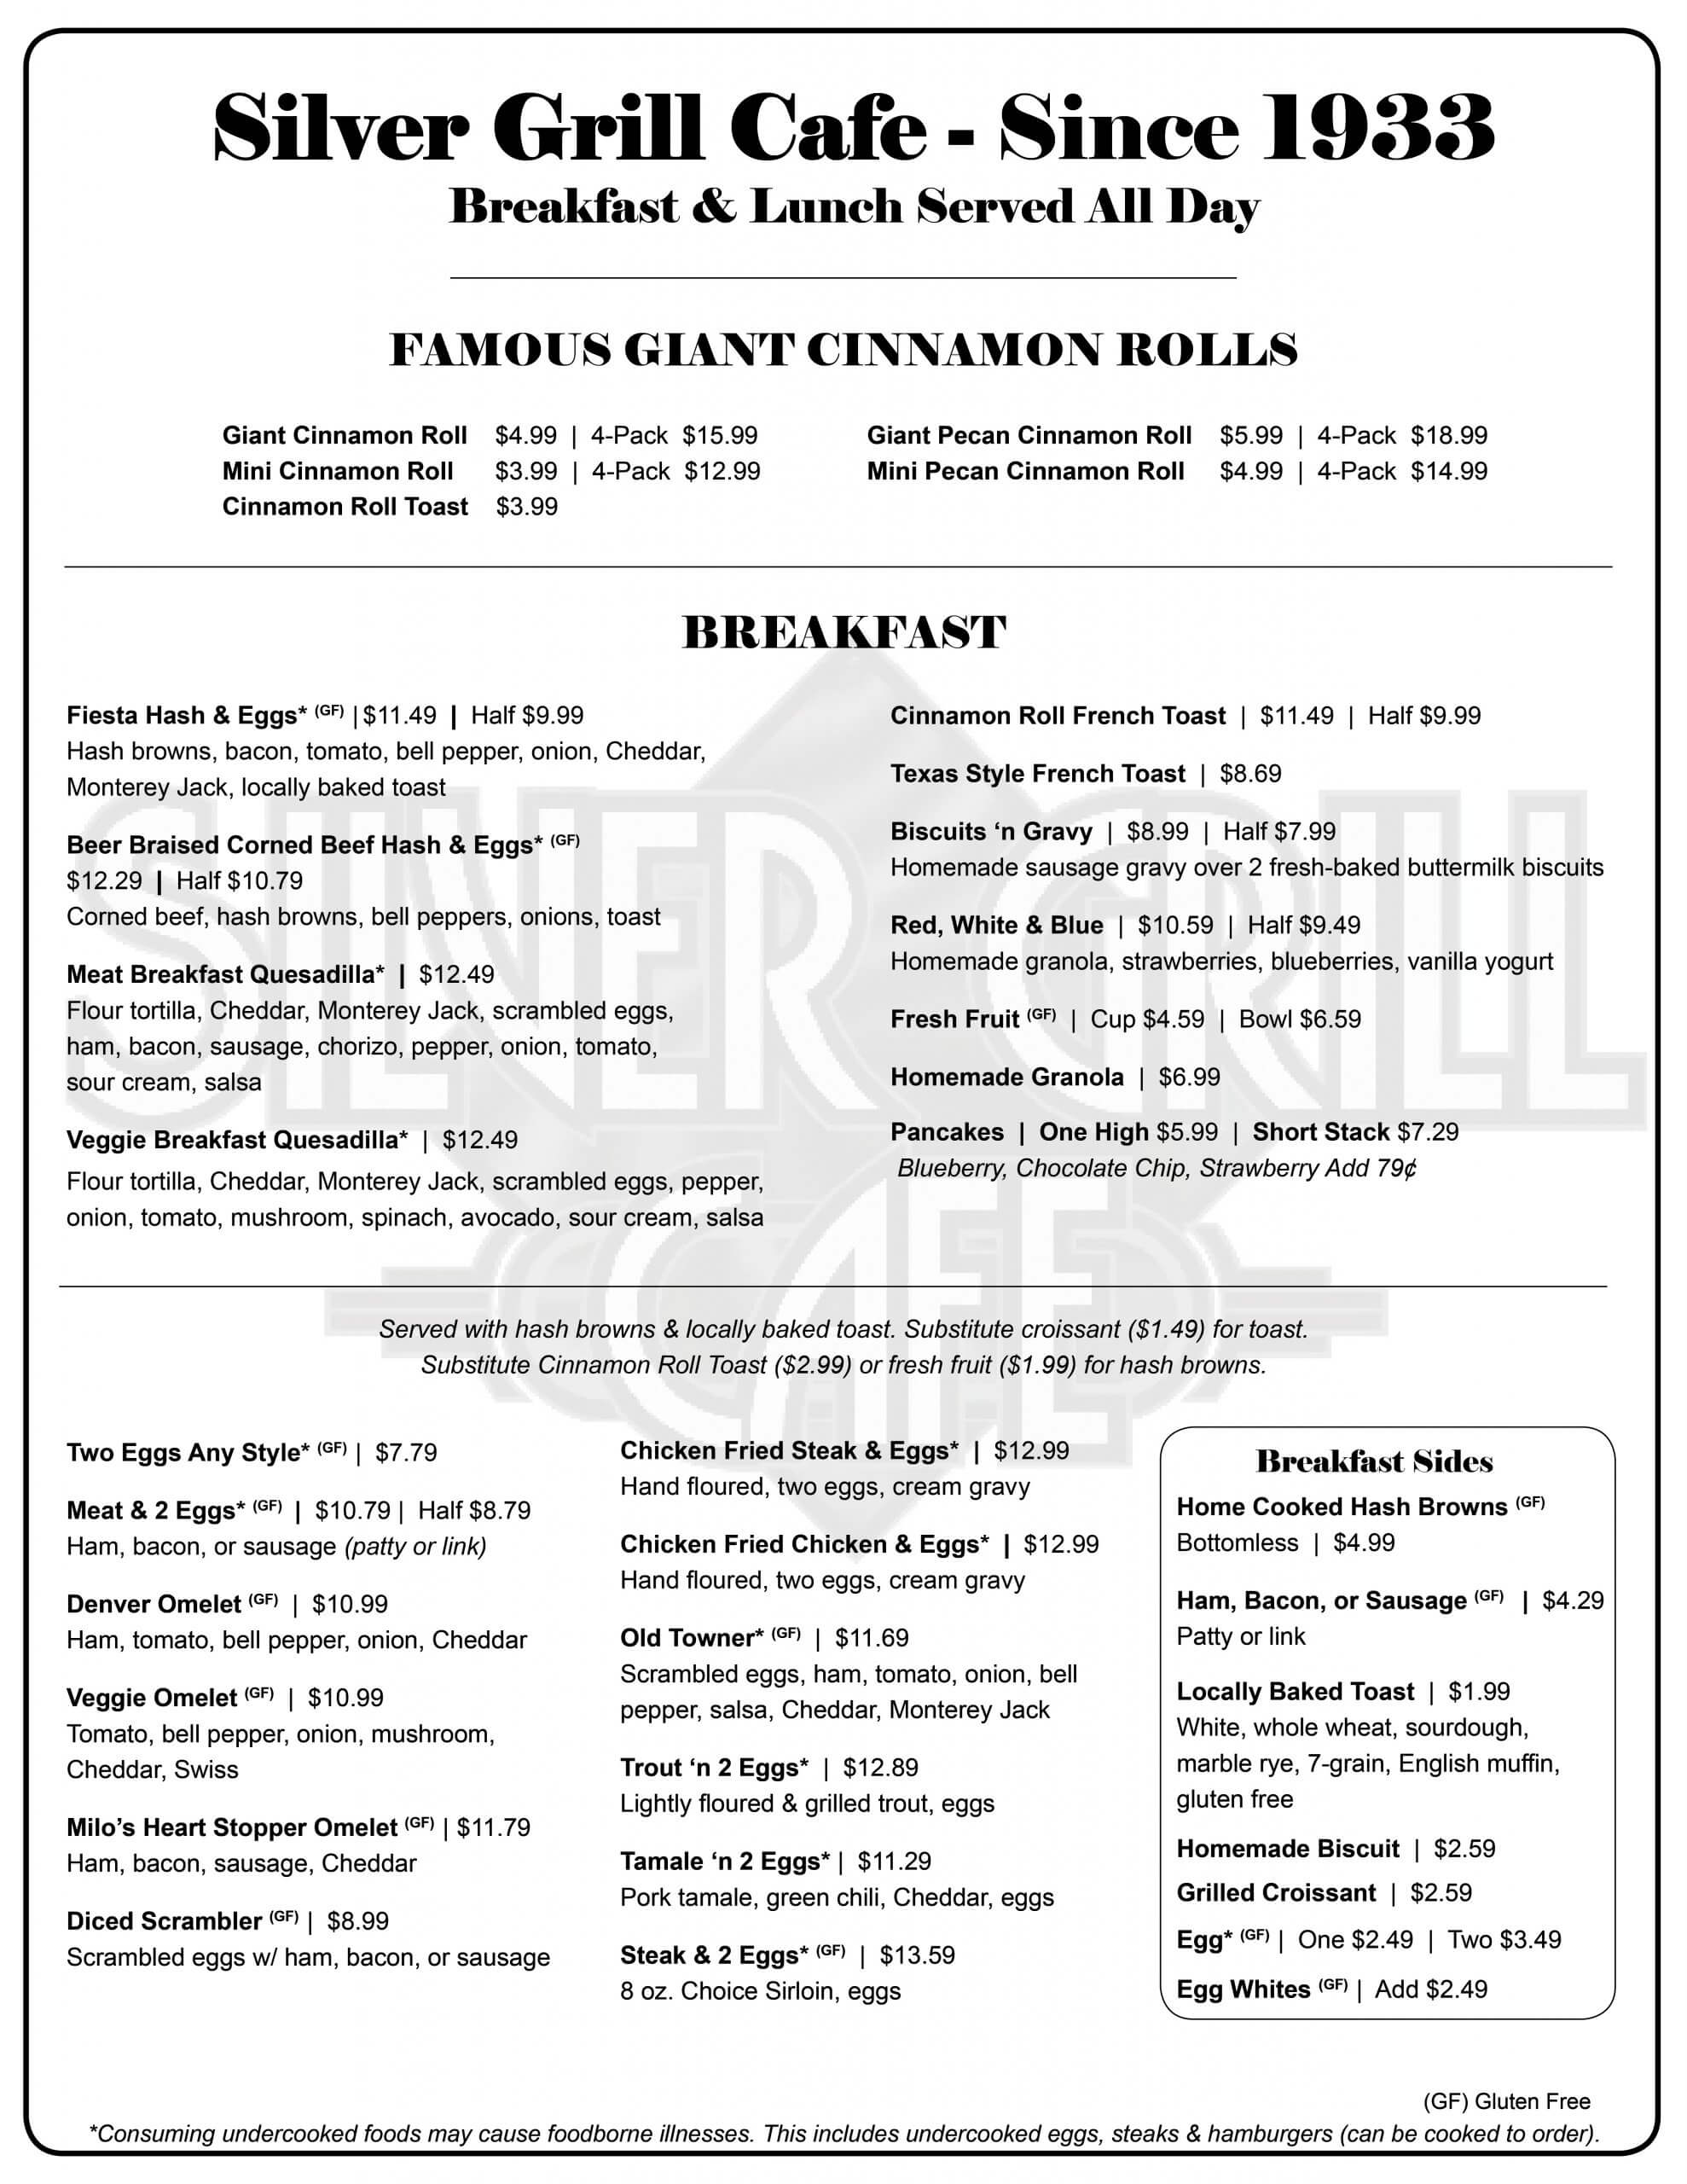 Silver Grill 8.5x11 2 sided FULL MENU 2021Update PAGE 1